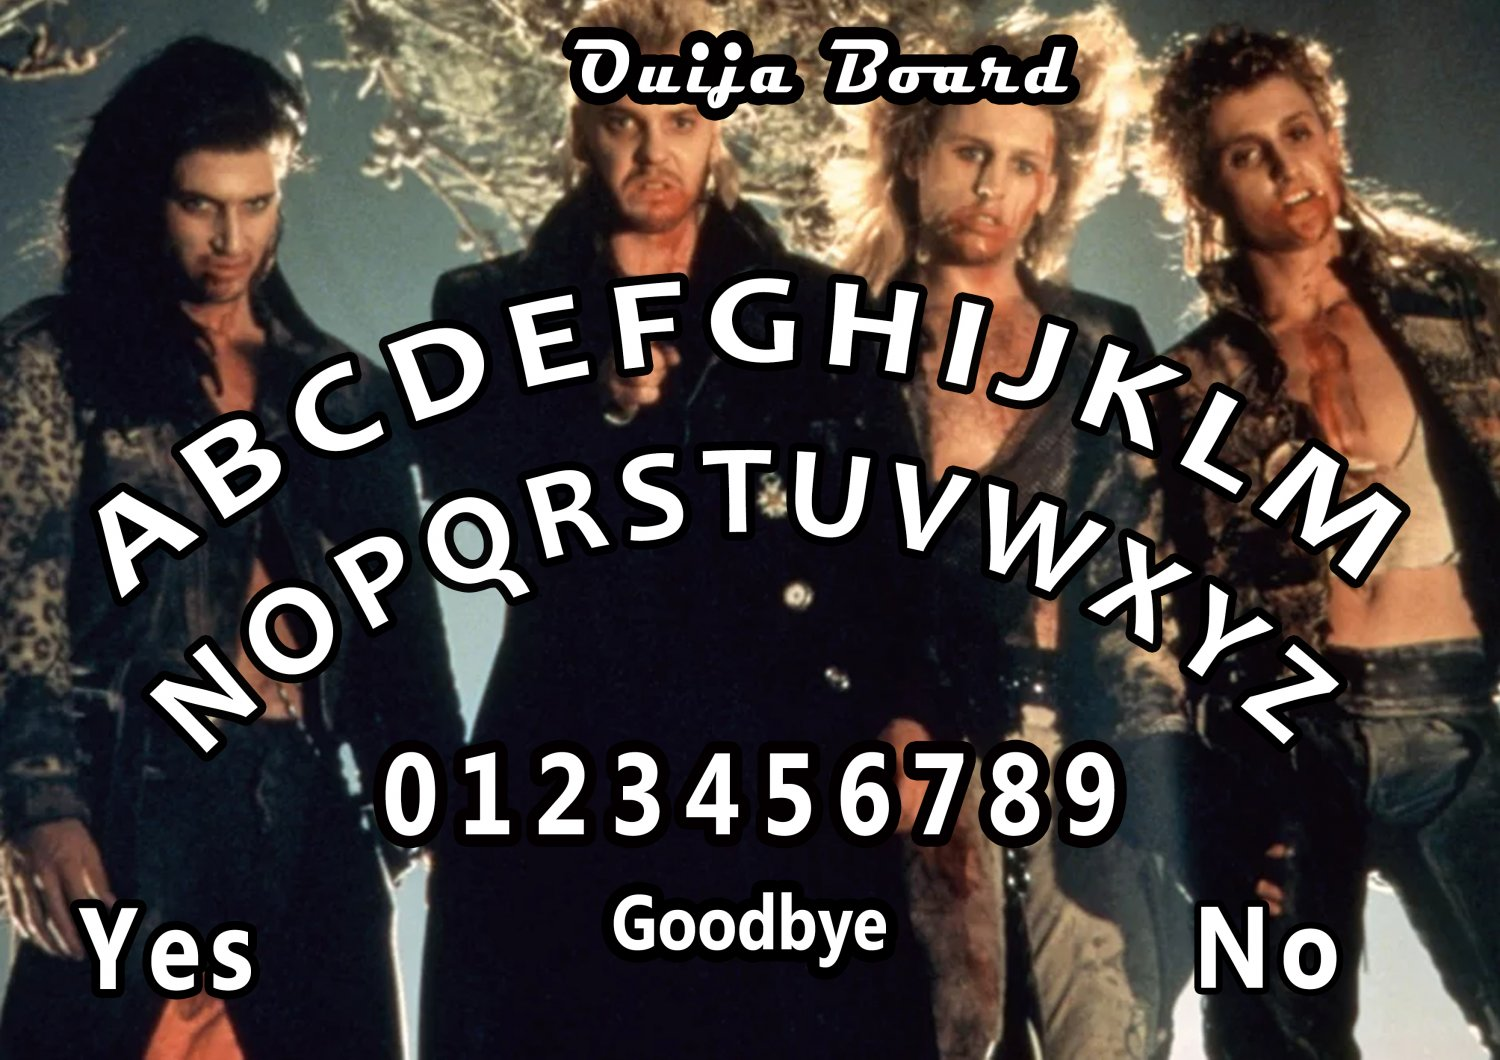 The Lost Boys A4 Laminated Ouija Board / Poster   Ghost Hunting   EVP   Seances. No.1